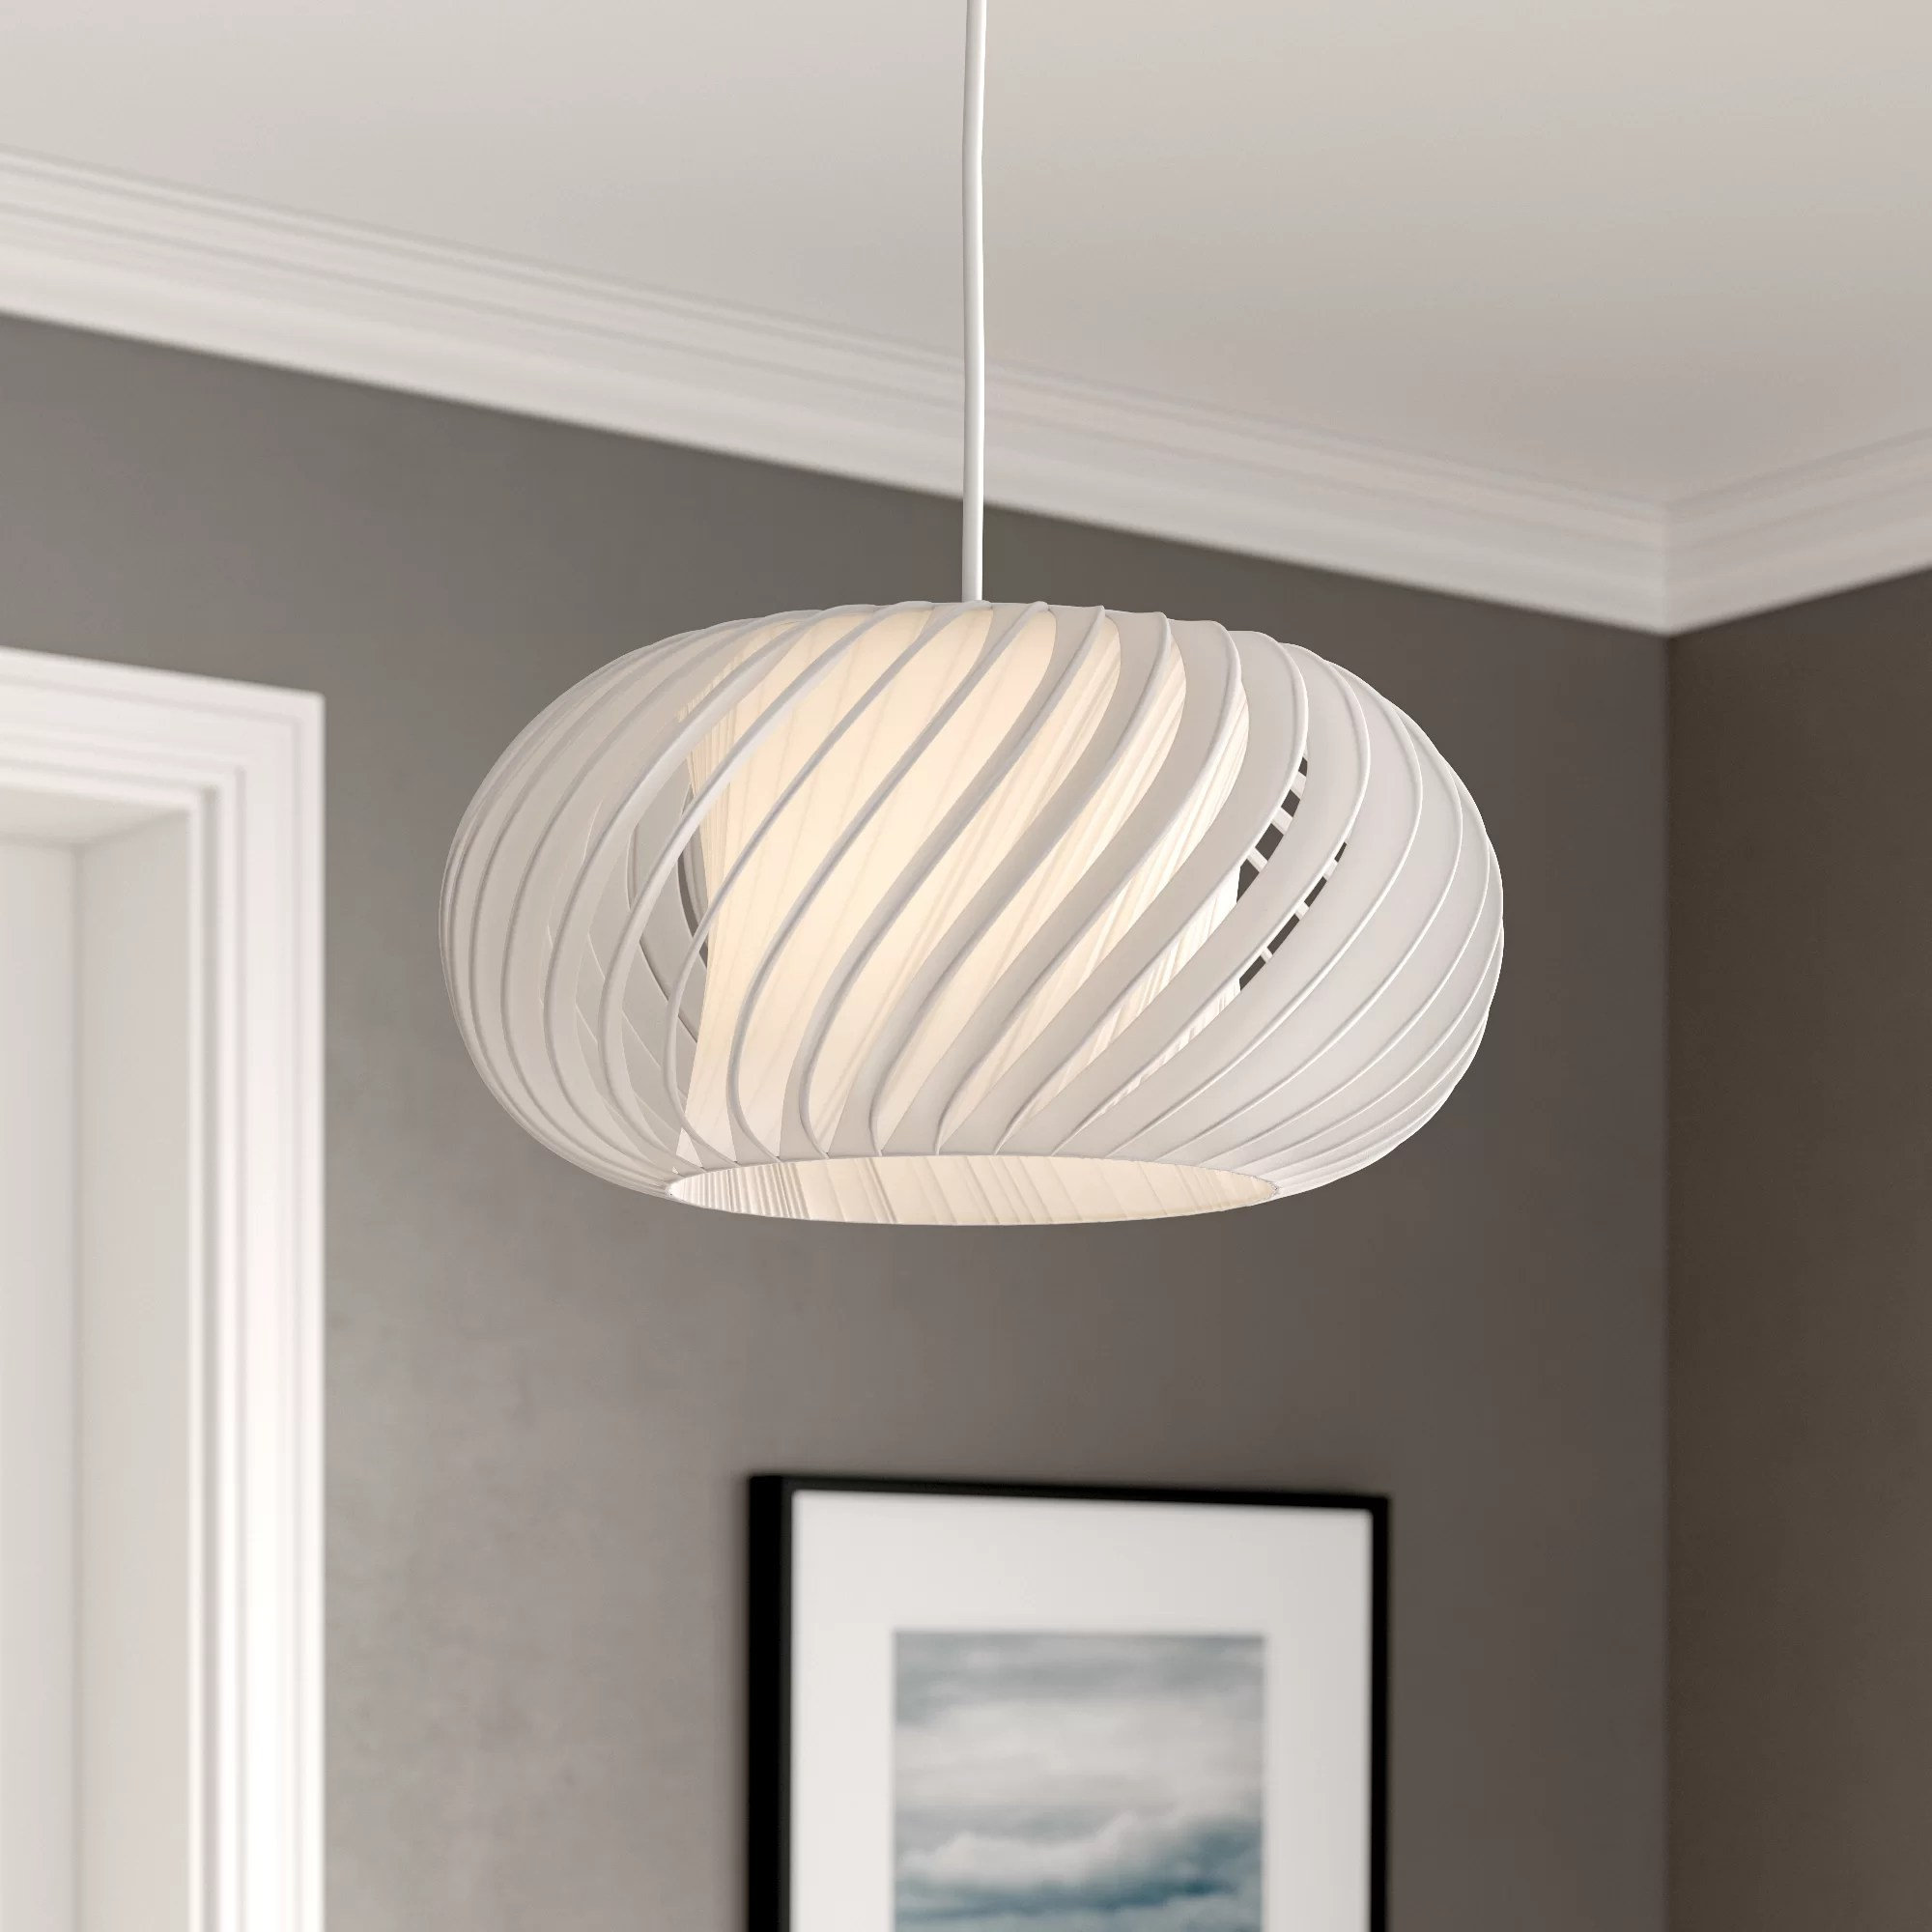 Ceiling Light Shades 30cm Fabric Novelty Pendant Shade